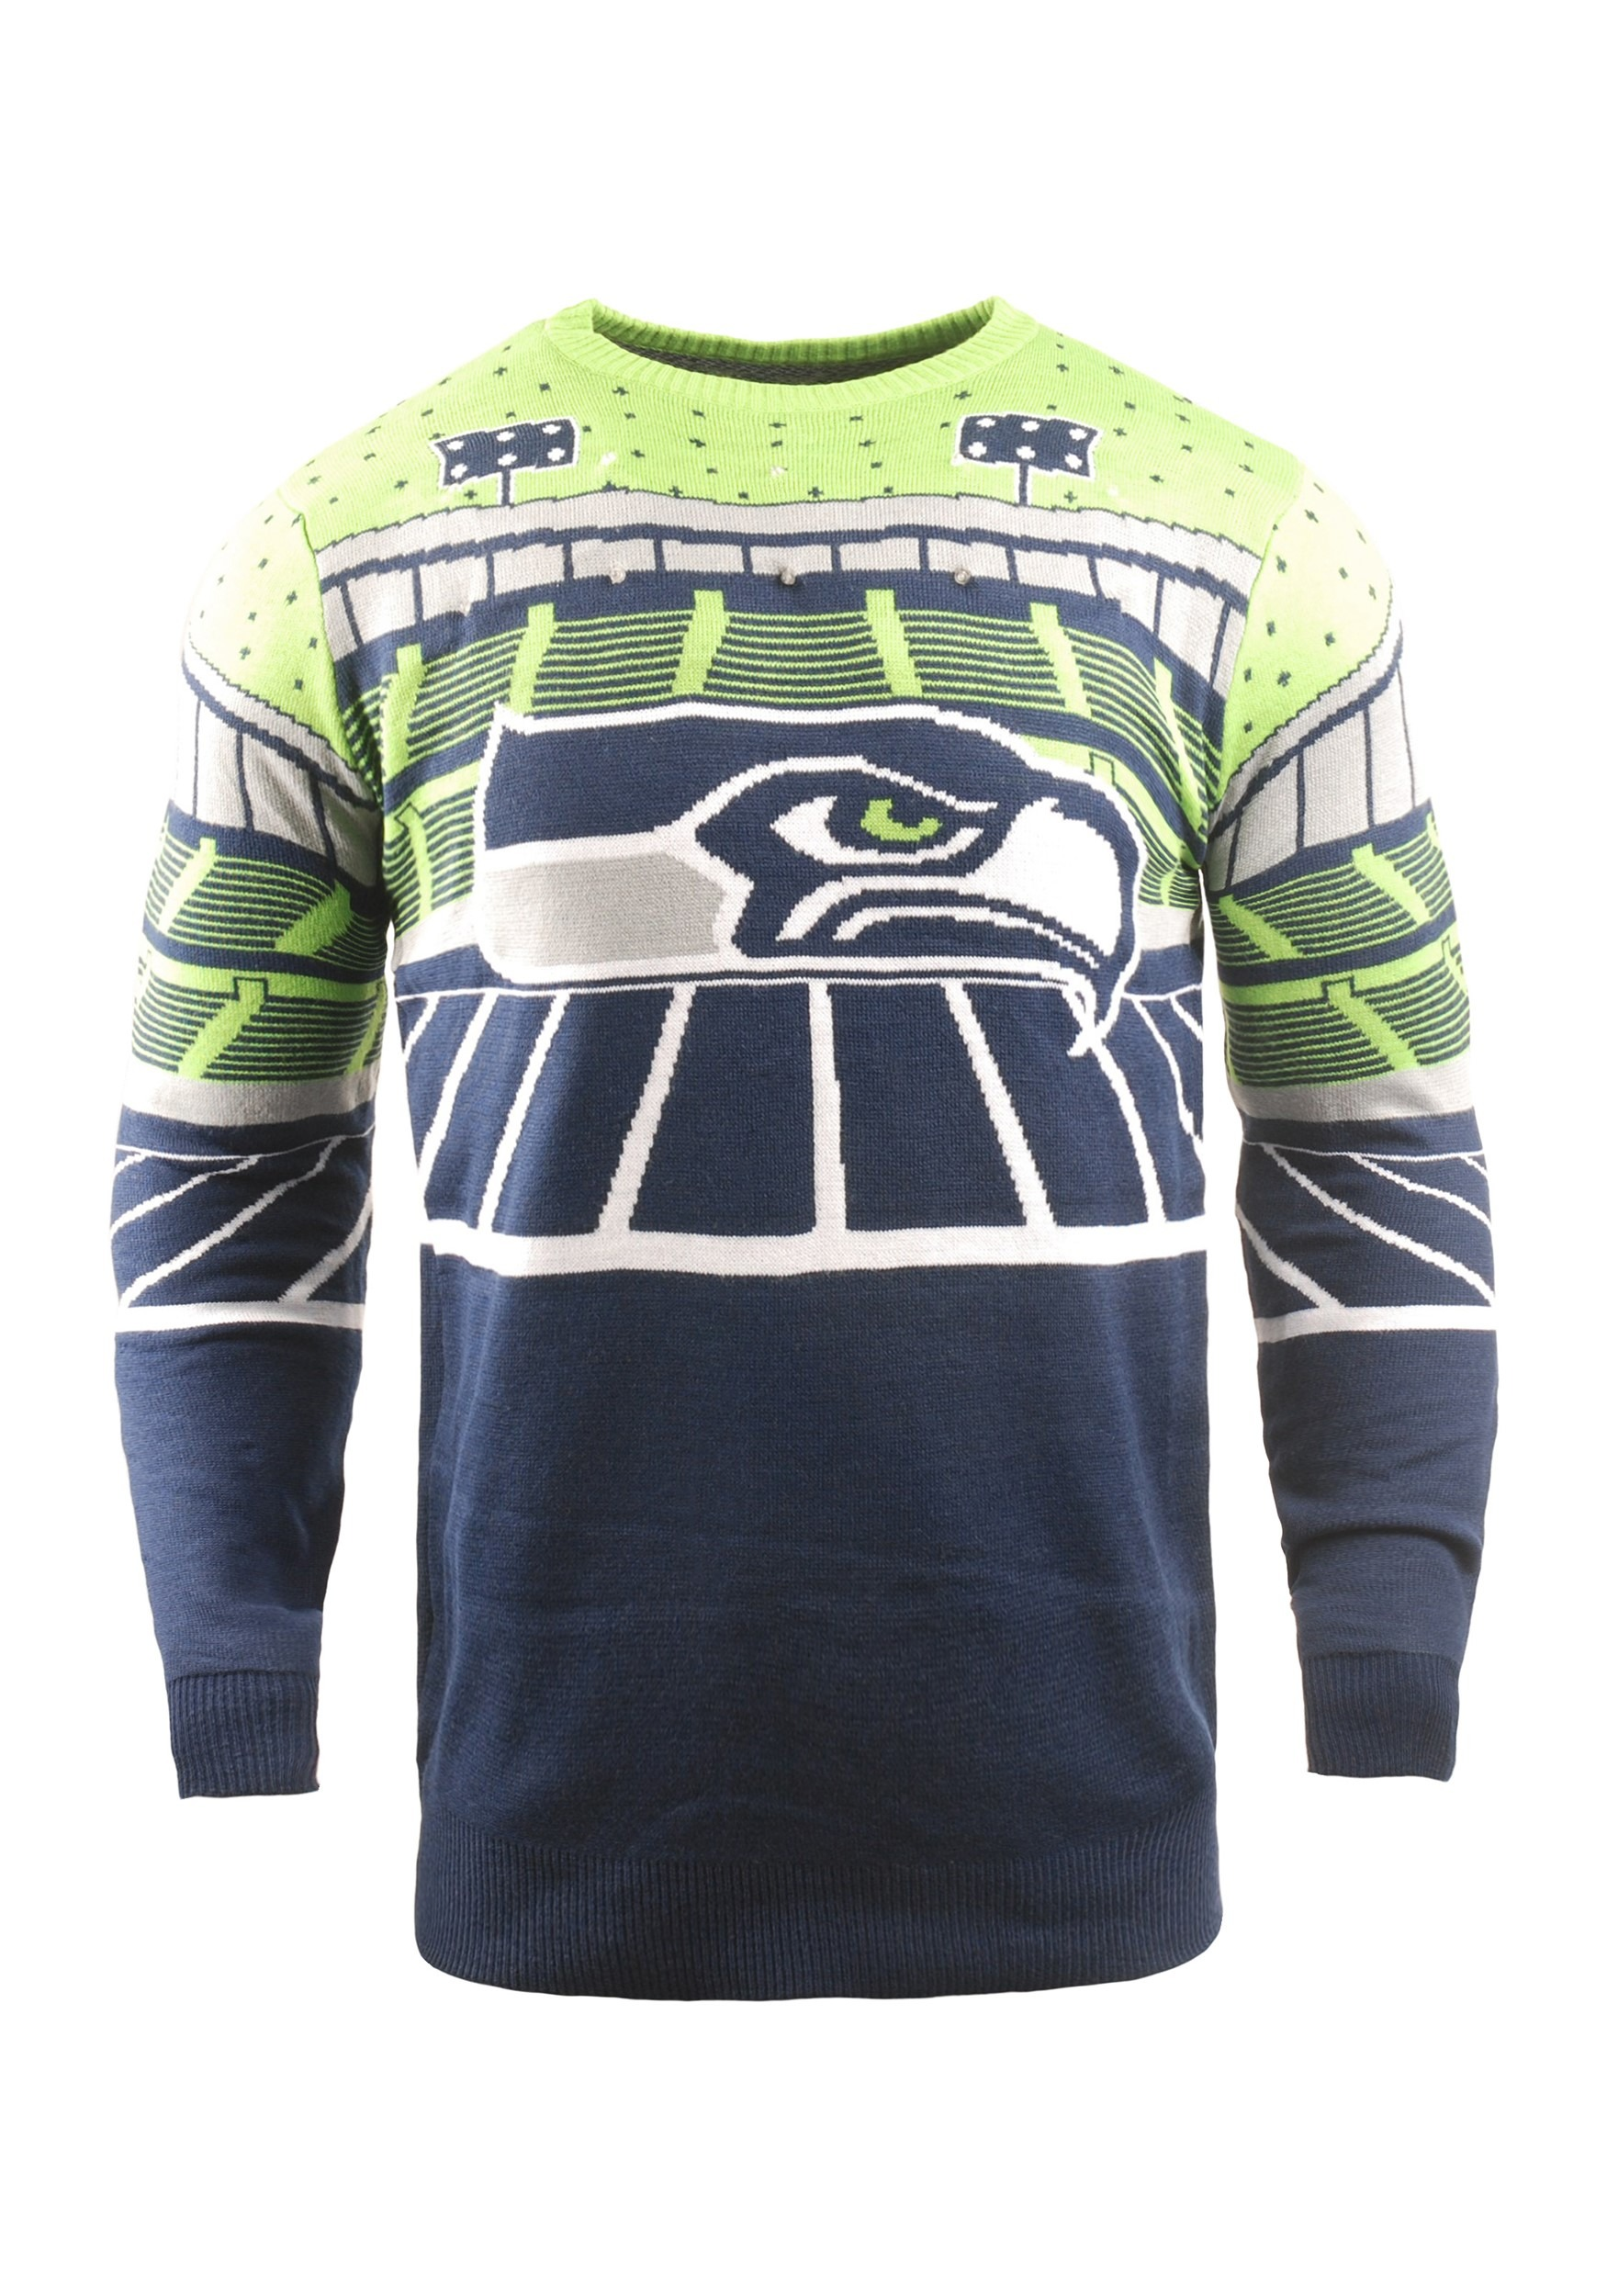 sale retailer 091c4 4f313 Seattle Seahawks Light Up Bluetooth Ugly Christmas Sweater